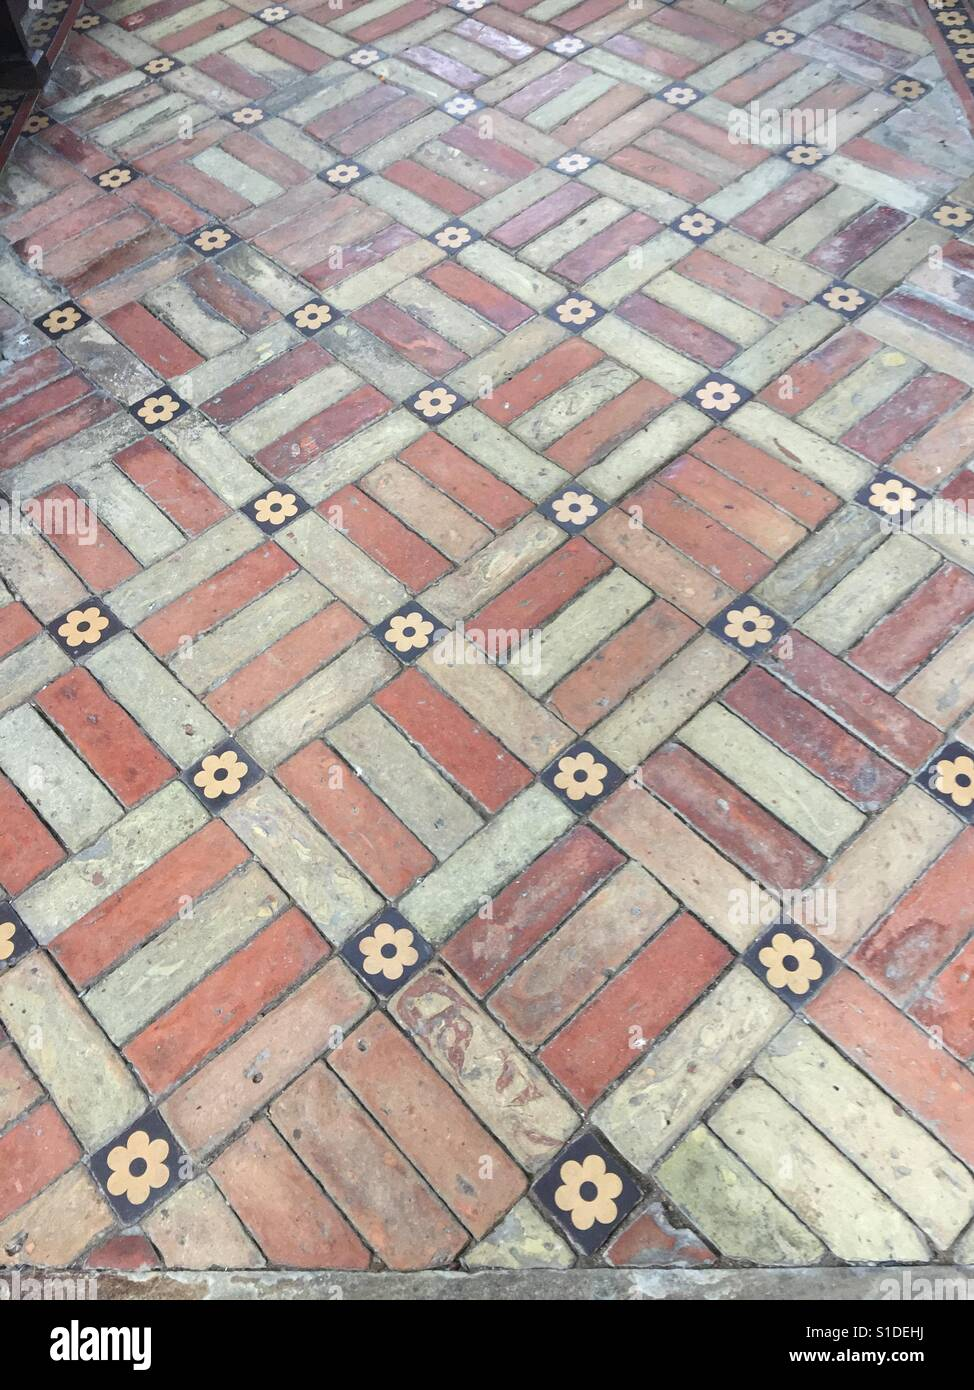 Brick and ceramic tile floor with red and cream bricks with small brick and ceramic tile floor with red and cream bricks with small floral tiles in geometric pattern dailygadgetfo Gallery